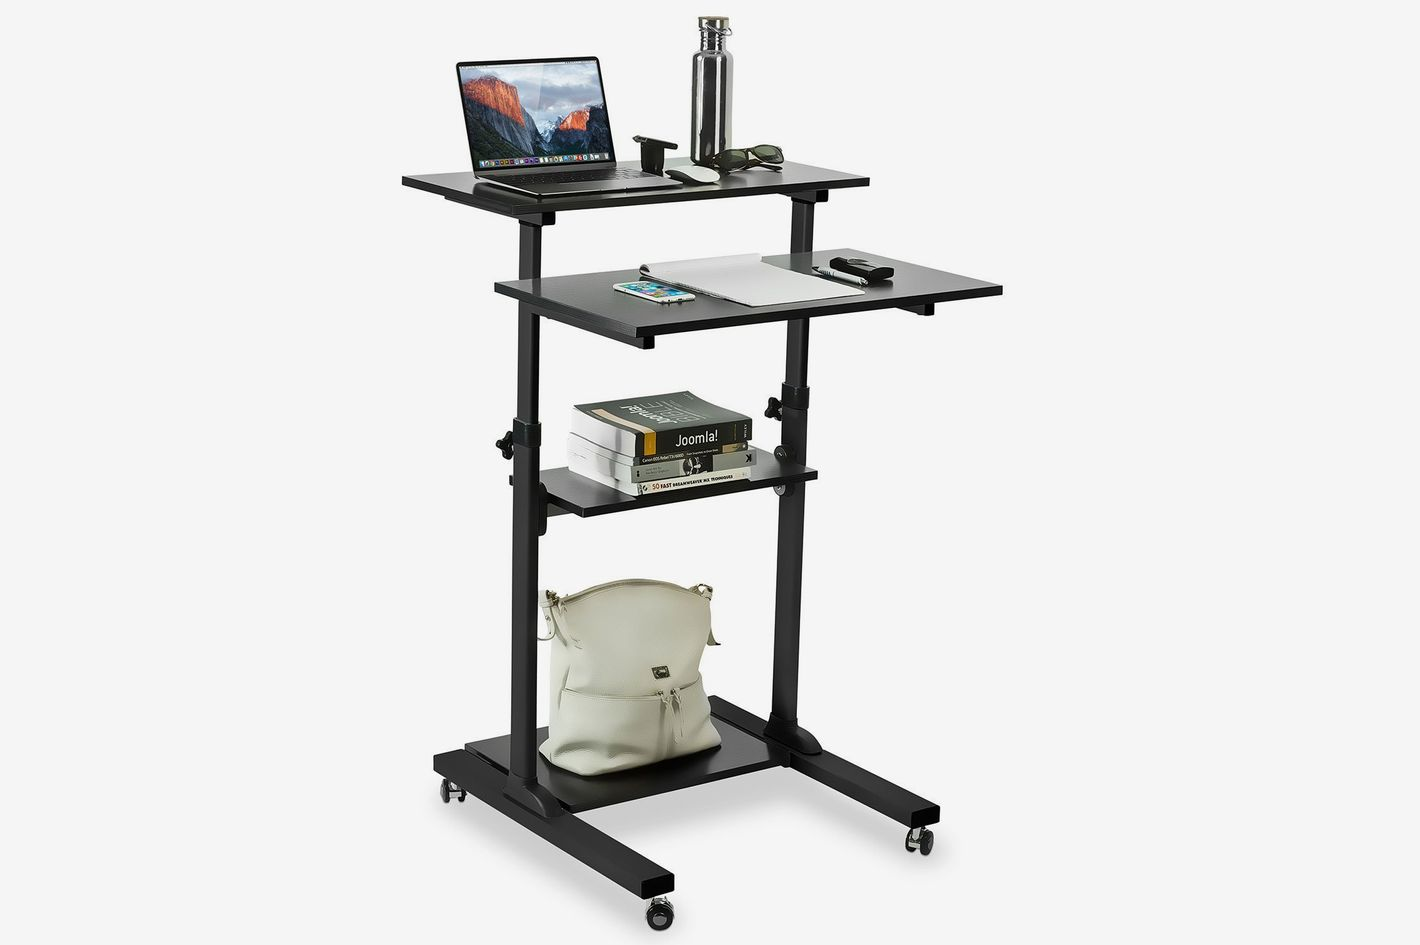 table portable desk standing riser raising product detail buy adjustable folding wooden desktop on laptop stand